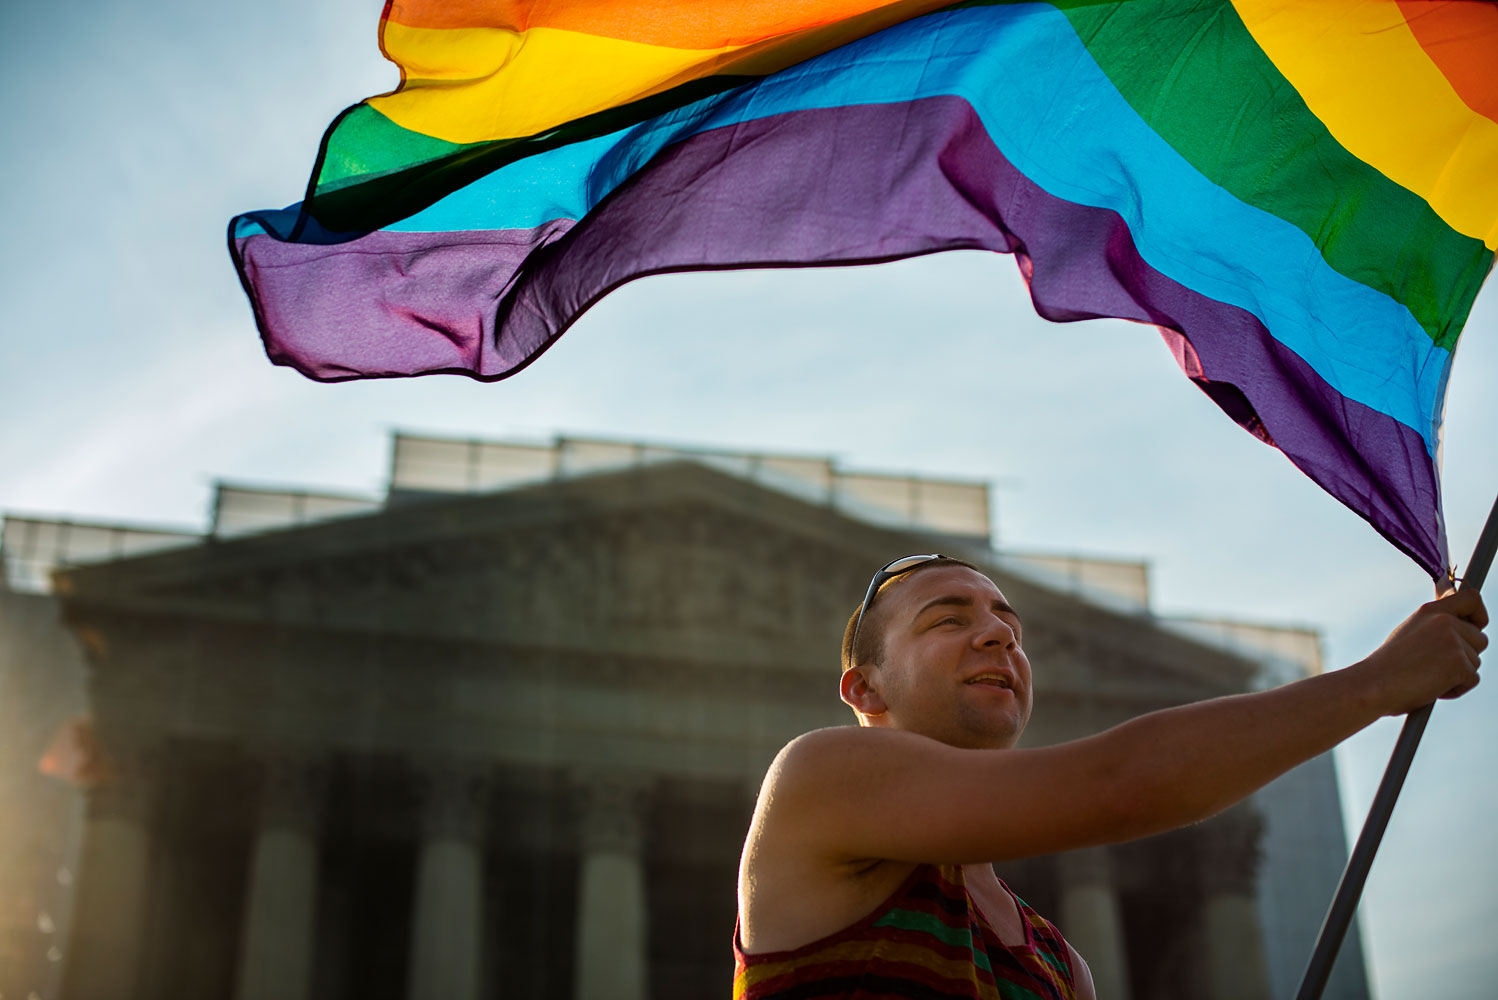 Same-sex-marriage supporters wave a rainbow flag in front of the U.S. Supreme Court in Washington, D.C., on June 26, 2013